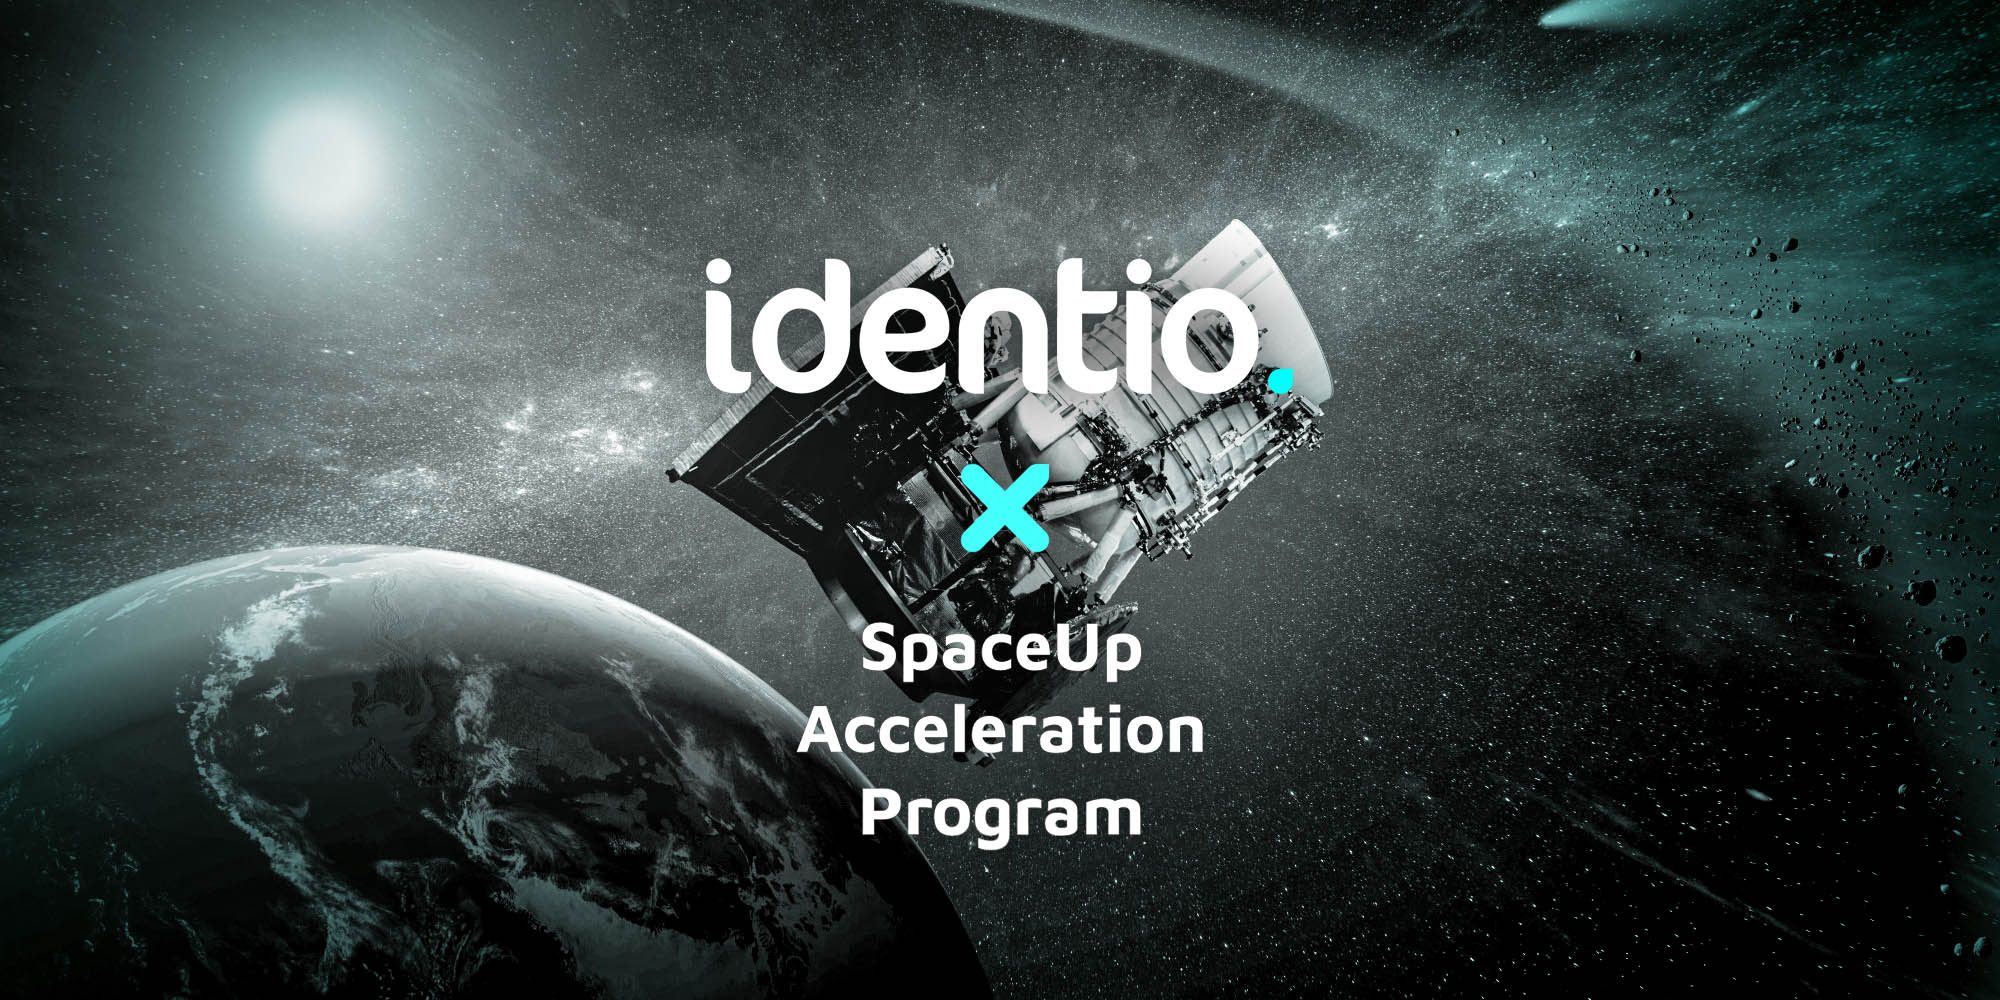 IdentioxSpaceup